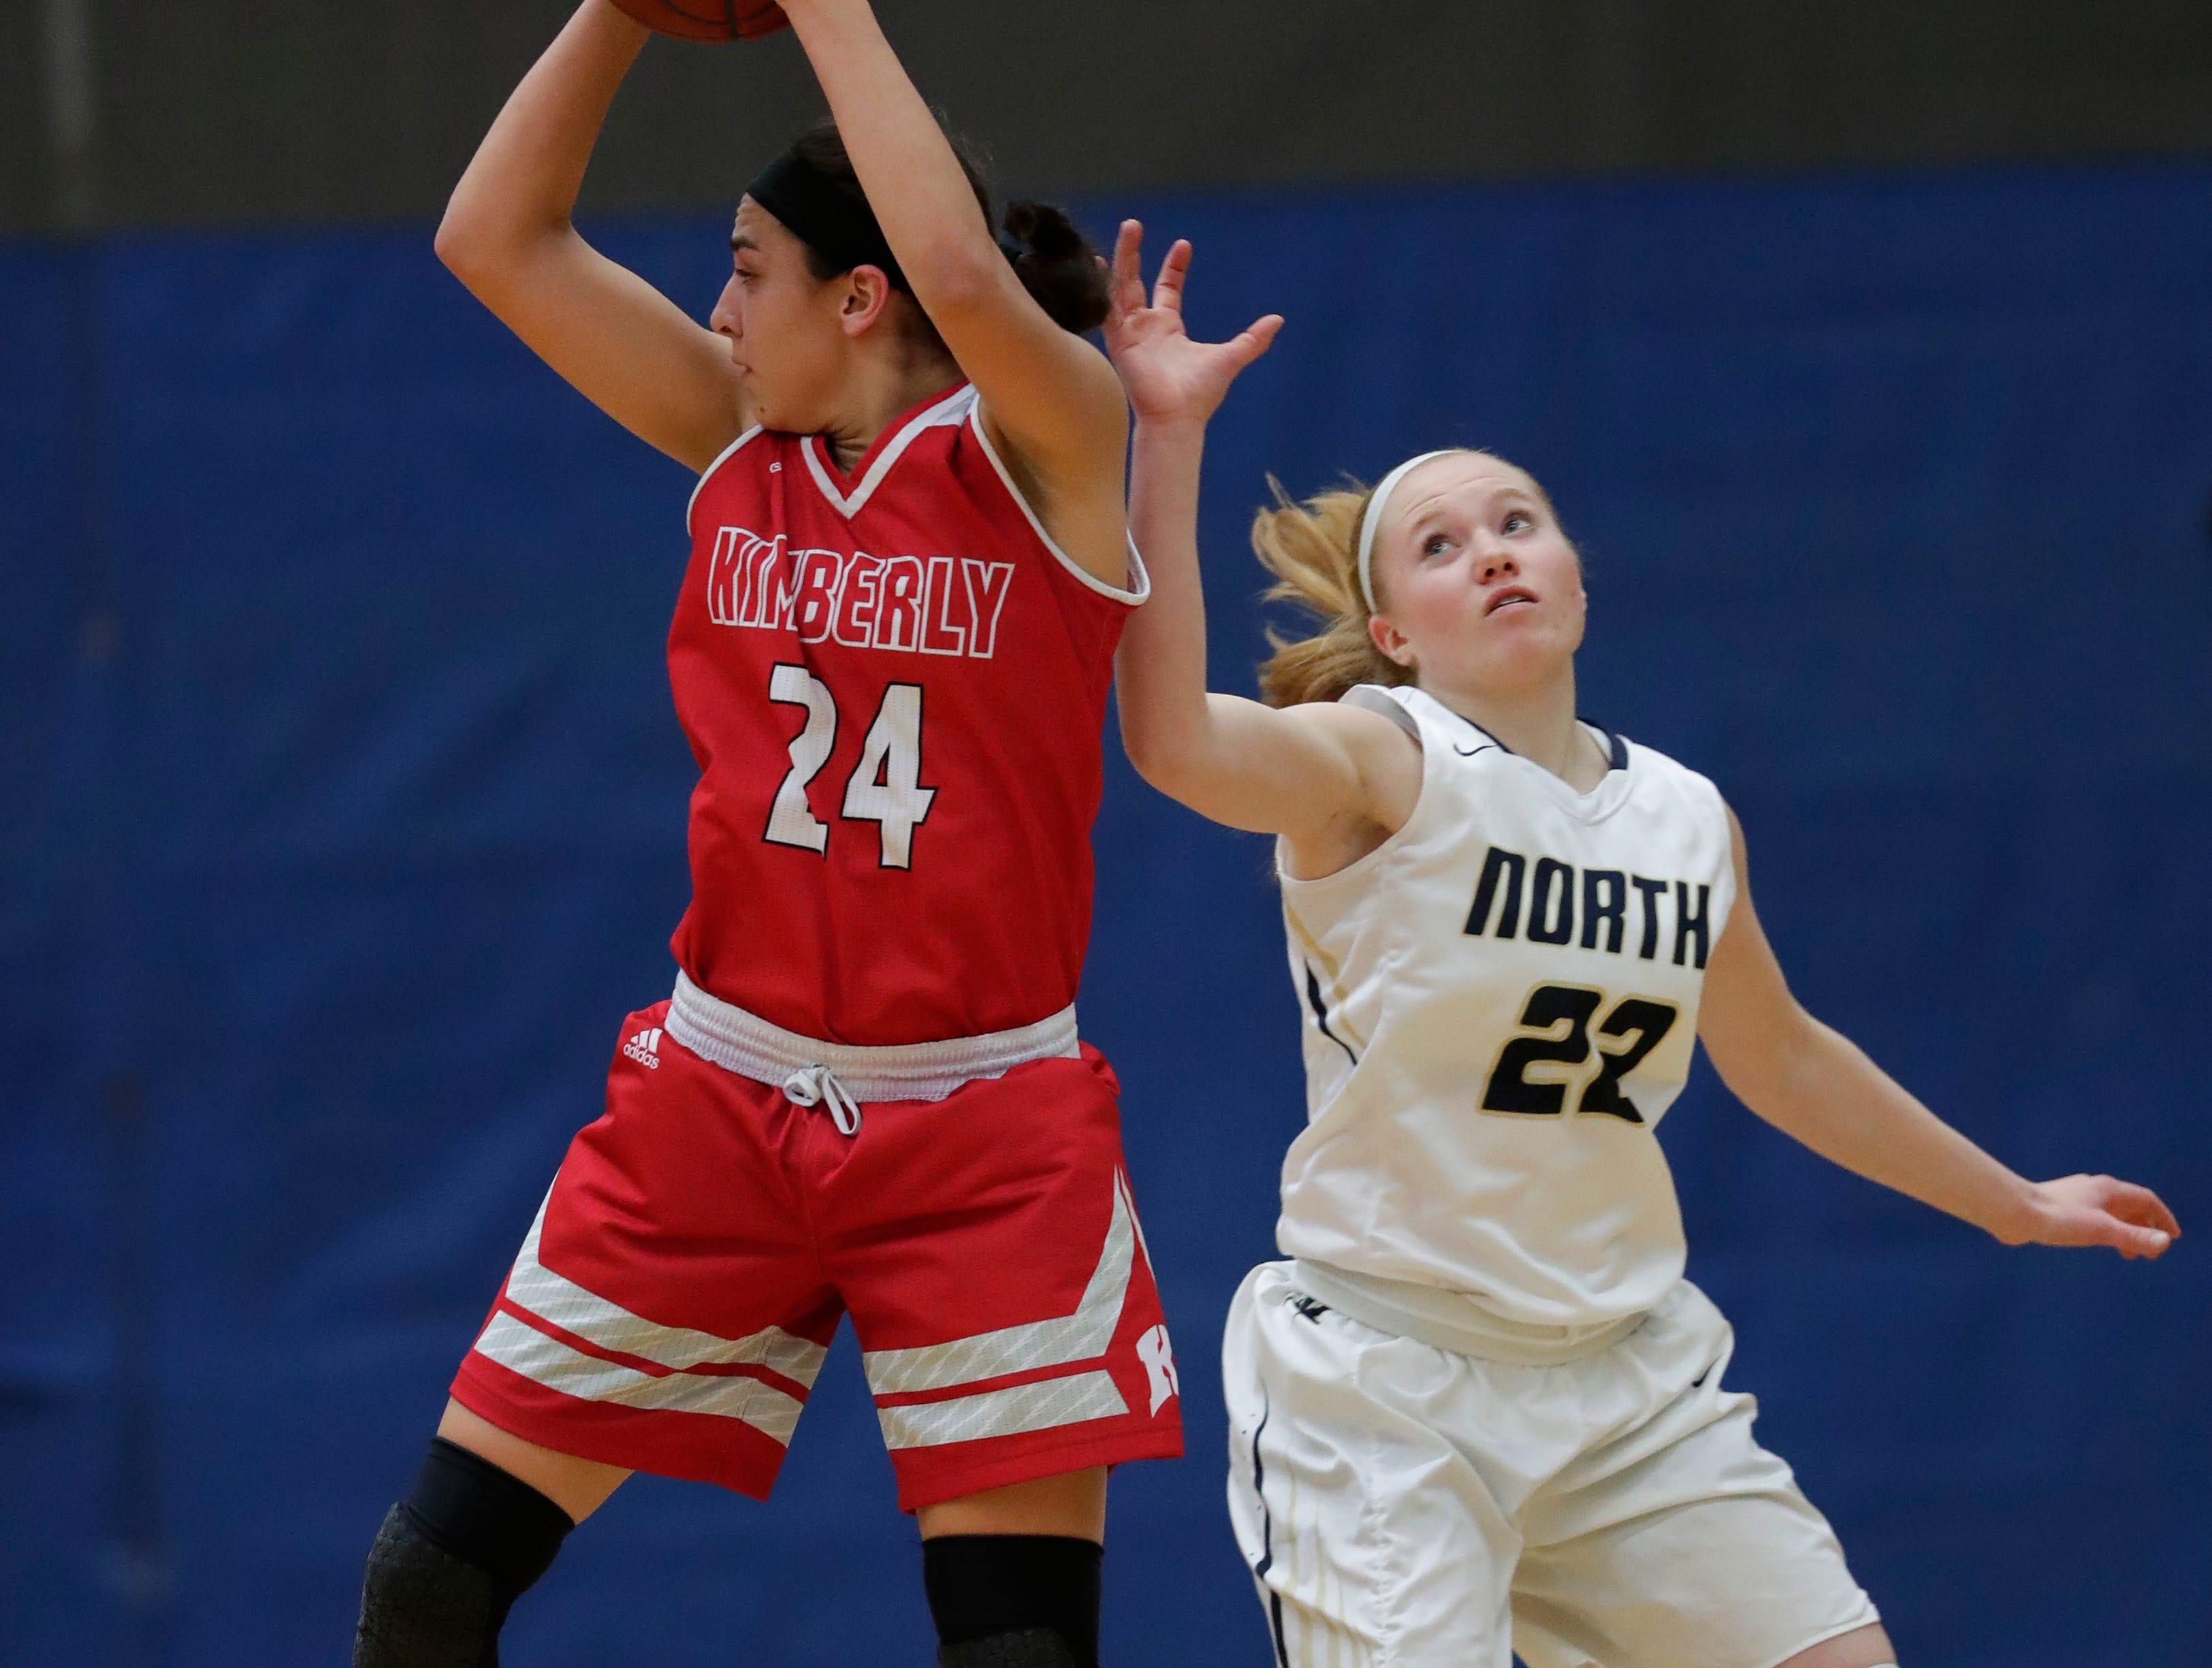 Kimberly High School's Shea Dechant (24) looks to pass the ball against Appleton North High School's Kennedy Litvinoff (22) during their girls basketball game Tuesday, January 8, 2019, in Appleton, Wis. Dan Powers/USA TODAY NETWORK-Wisconsin